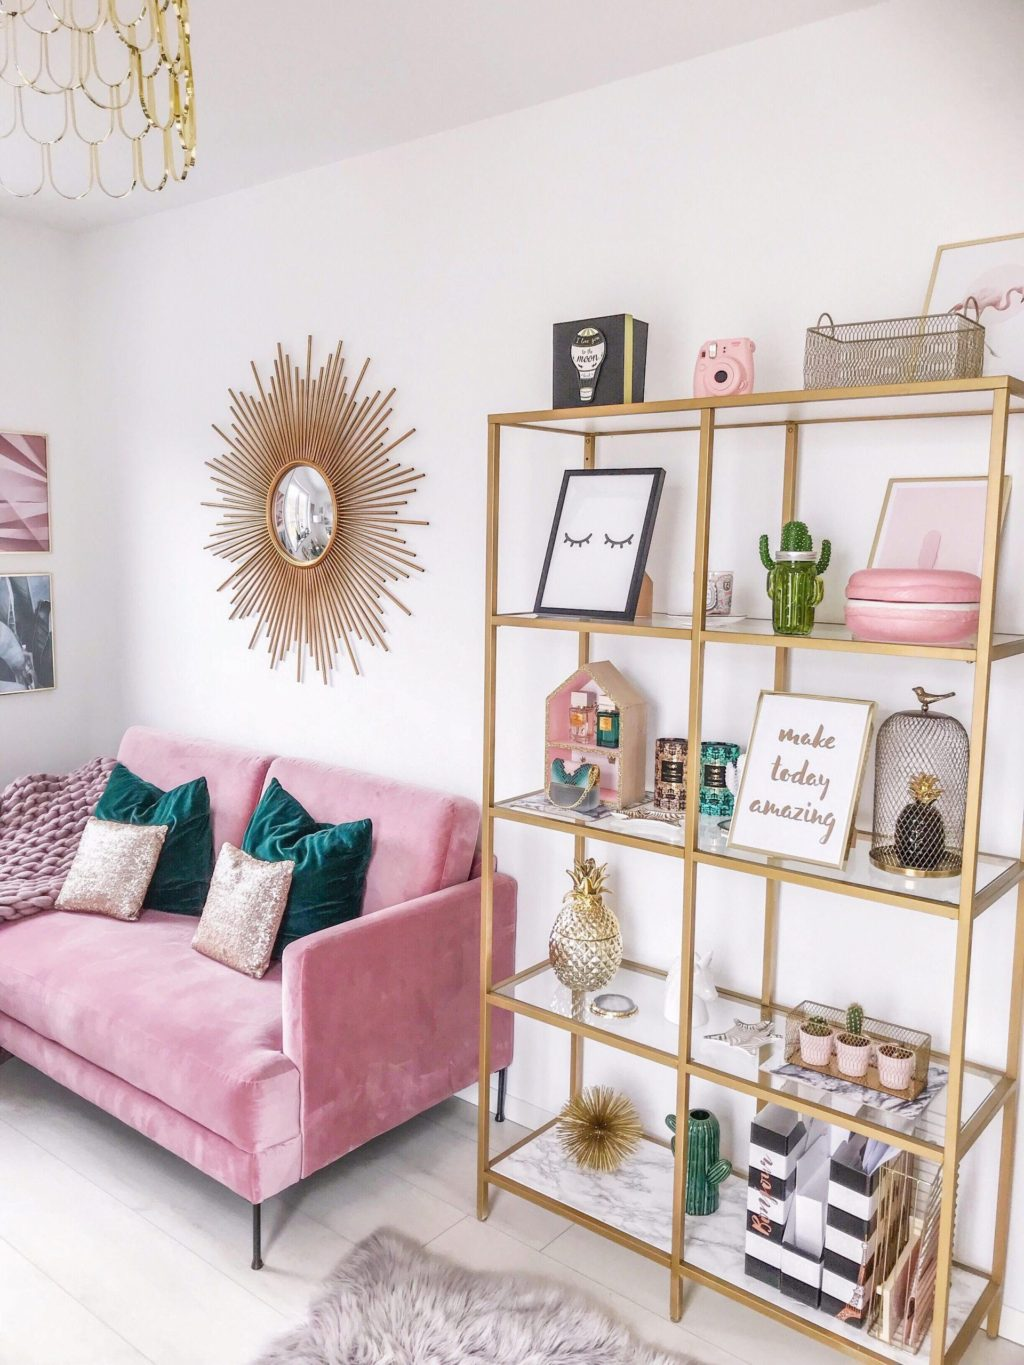 Soft-Pinks-2-1024x1365 Top 10 Outdated Home Decorating Trends to Avoid in 2021